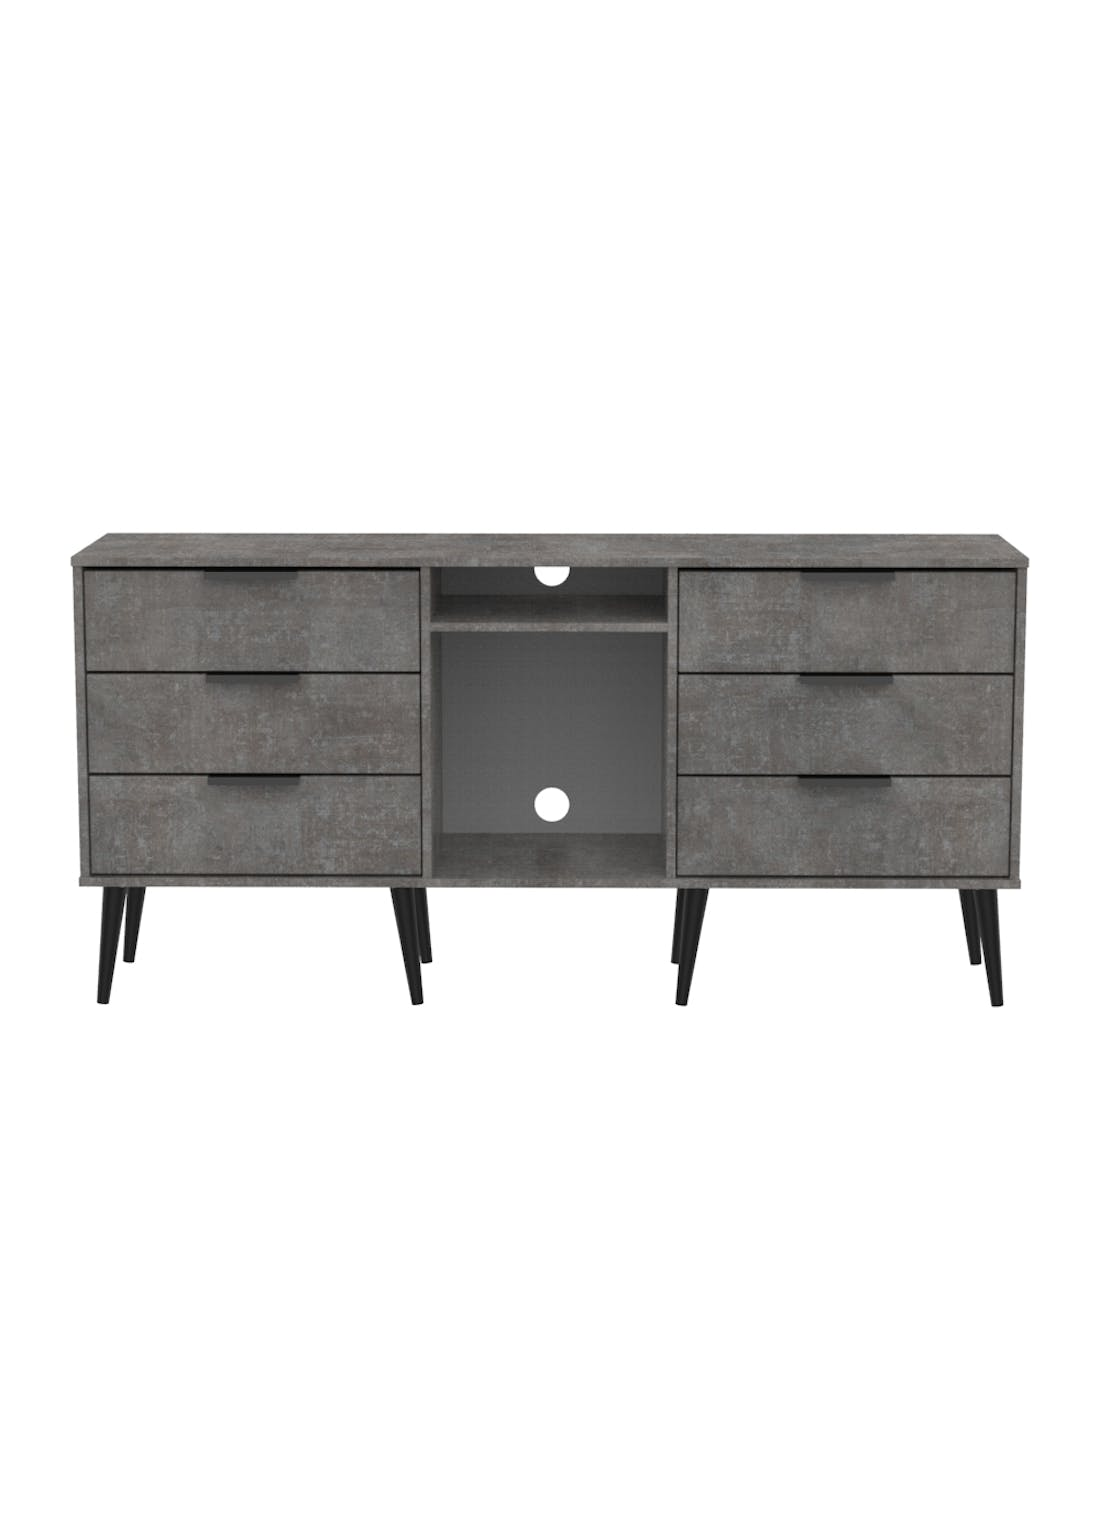 Swift Milano 6 Drawer TV Unit (74cm x 152cm x 39.5cm)